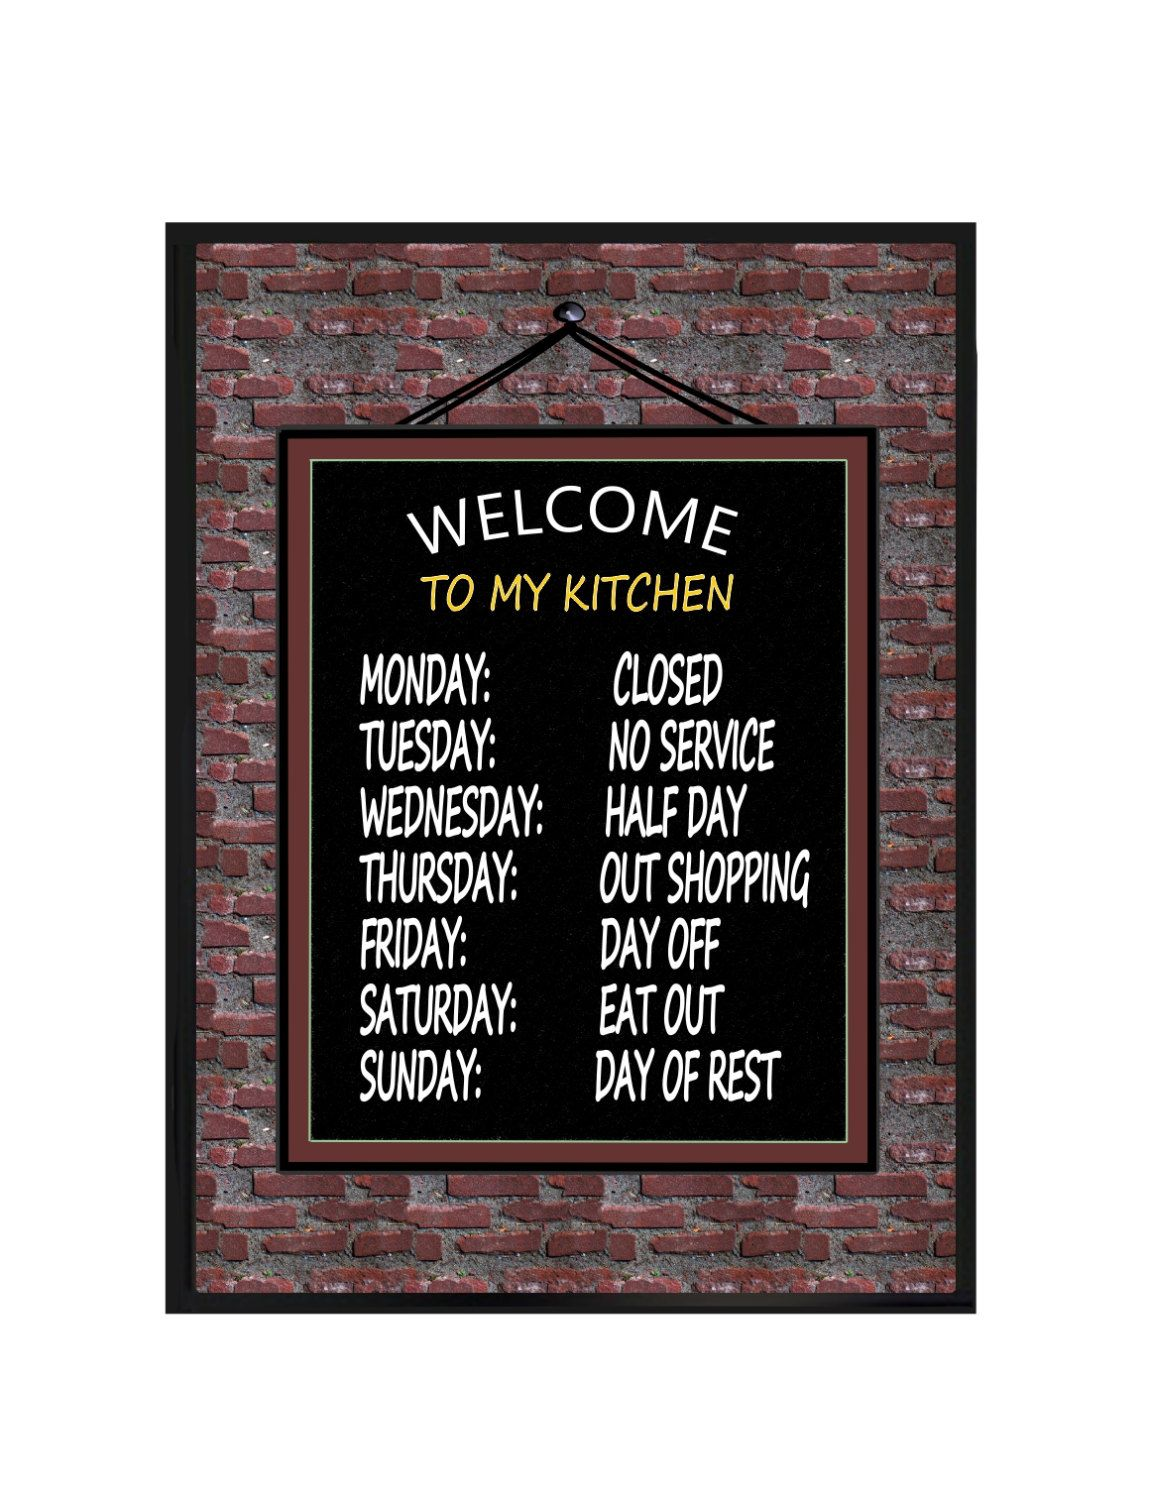 Welcome To My Kitchen Wall Plaque 8 Quot X 10 Quot Plaque Kitchen Decor Funny Quotes Wall Hanging Kitchen Funny Quotes Kitchen Wall Plaques Kitchen Signs